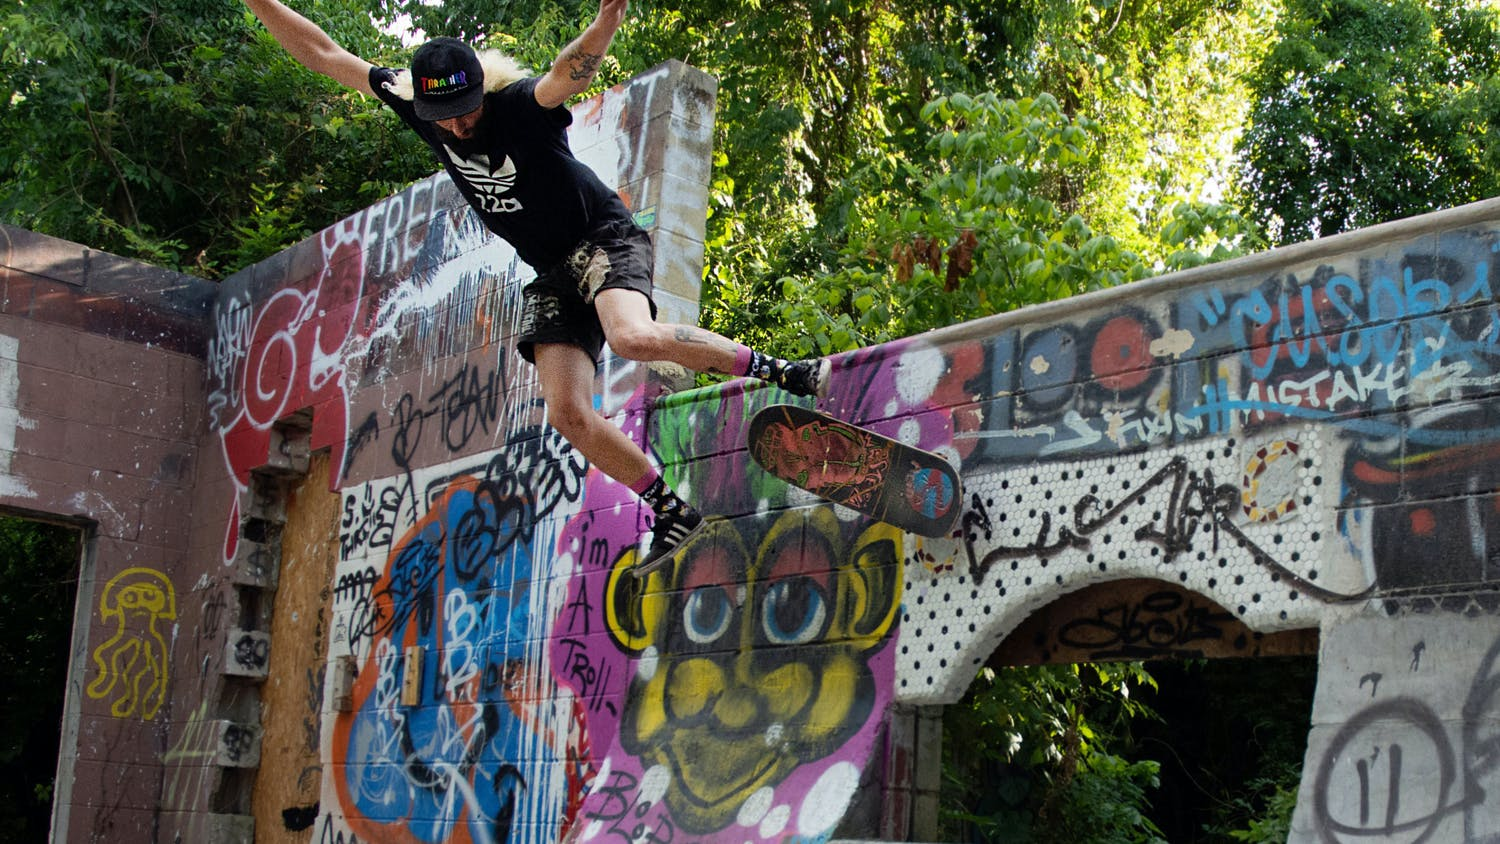 """Josh Ketterer, 29, attempts a skate trick called a """"50/50"""" at the Gentleman's Club, a DIY skate park in Gainesville, Florida on Sunday, May 30, 2021. The skate park was built by skaters on private property and the city has ordered it to be torn down by June 20."""